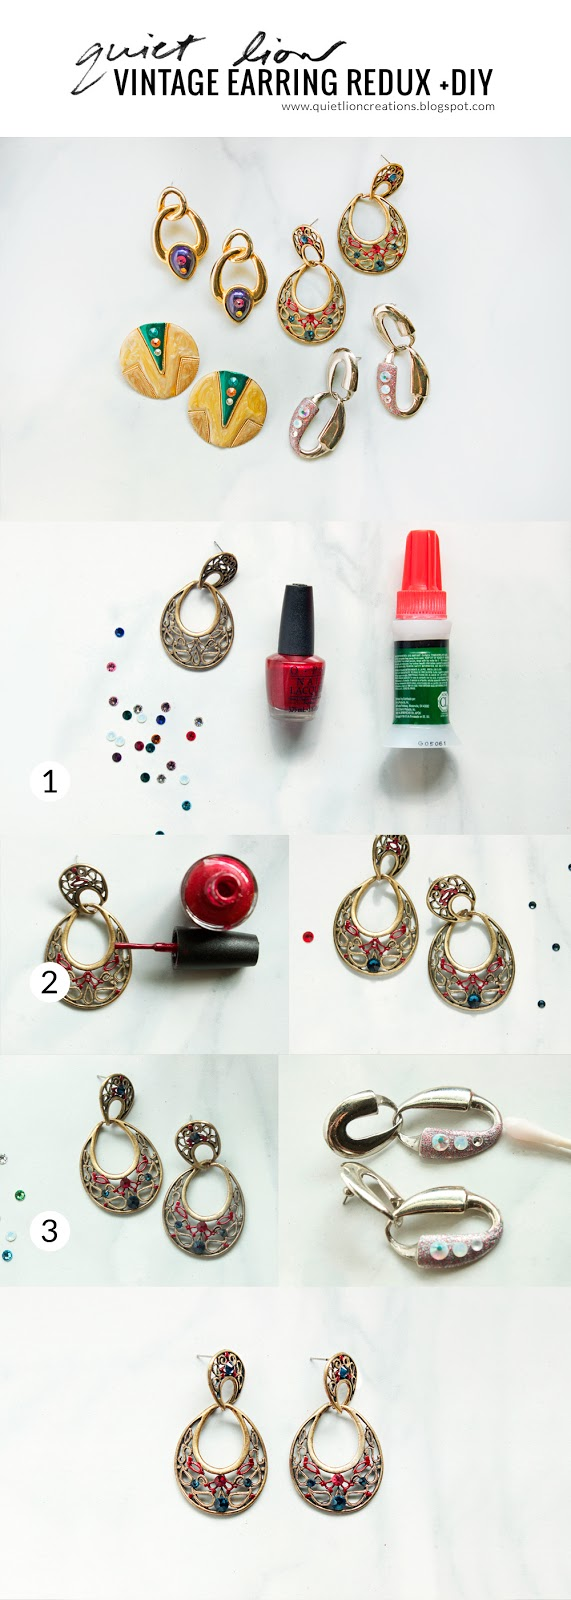 vintage earring recycling tutorial by Quiet Lion Creations. photo copyright Allison Beth Cooling.